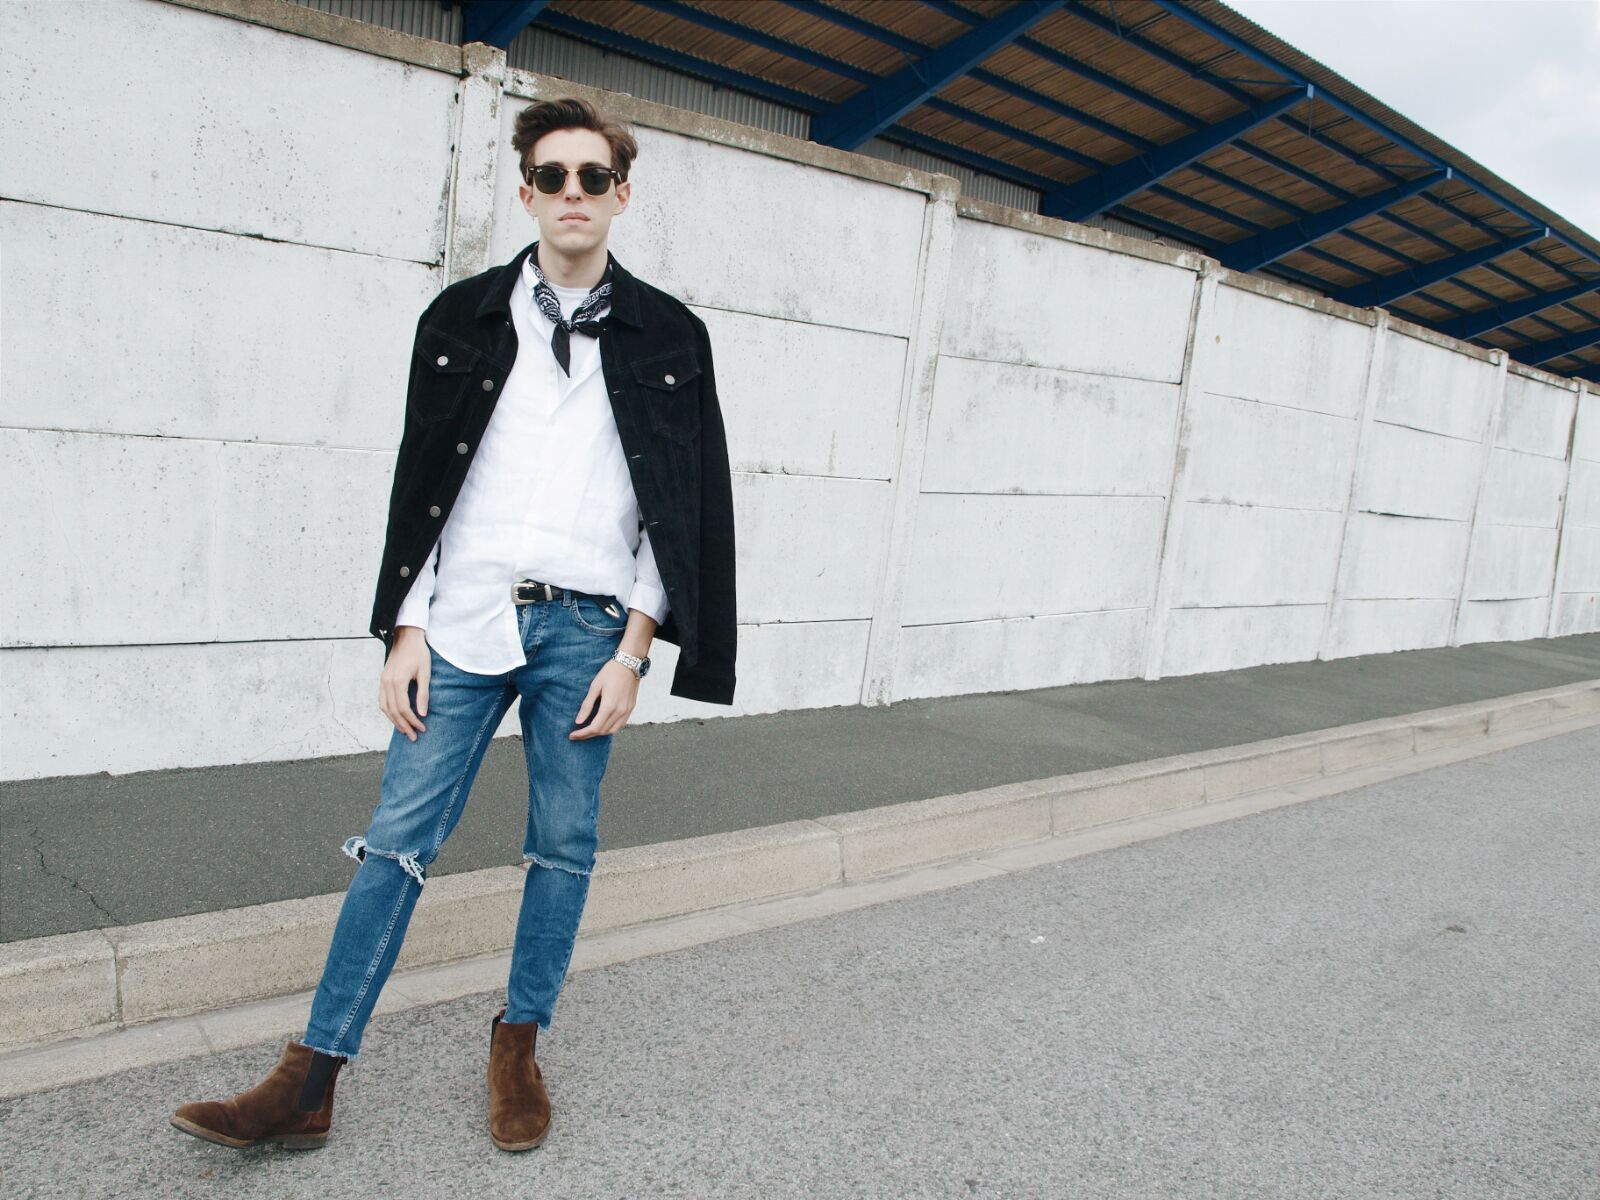 coastalandco-blog-bandana-denim-boots-fashion-man-style-street 2